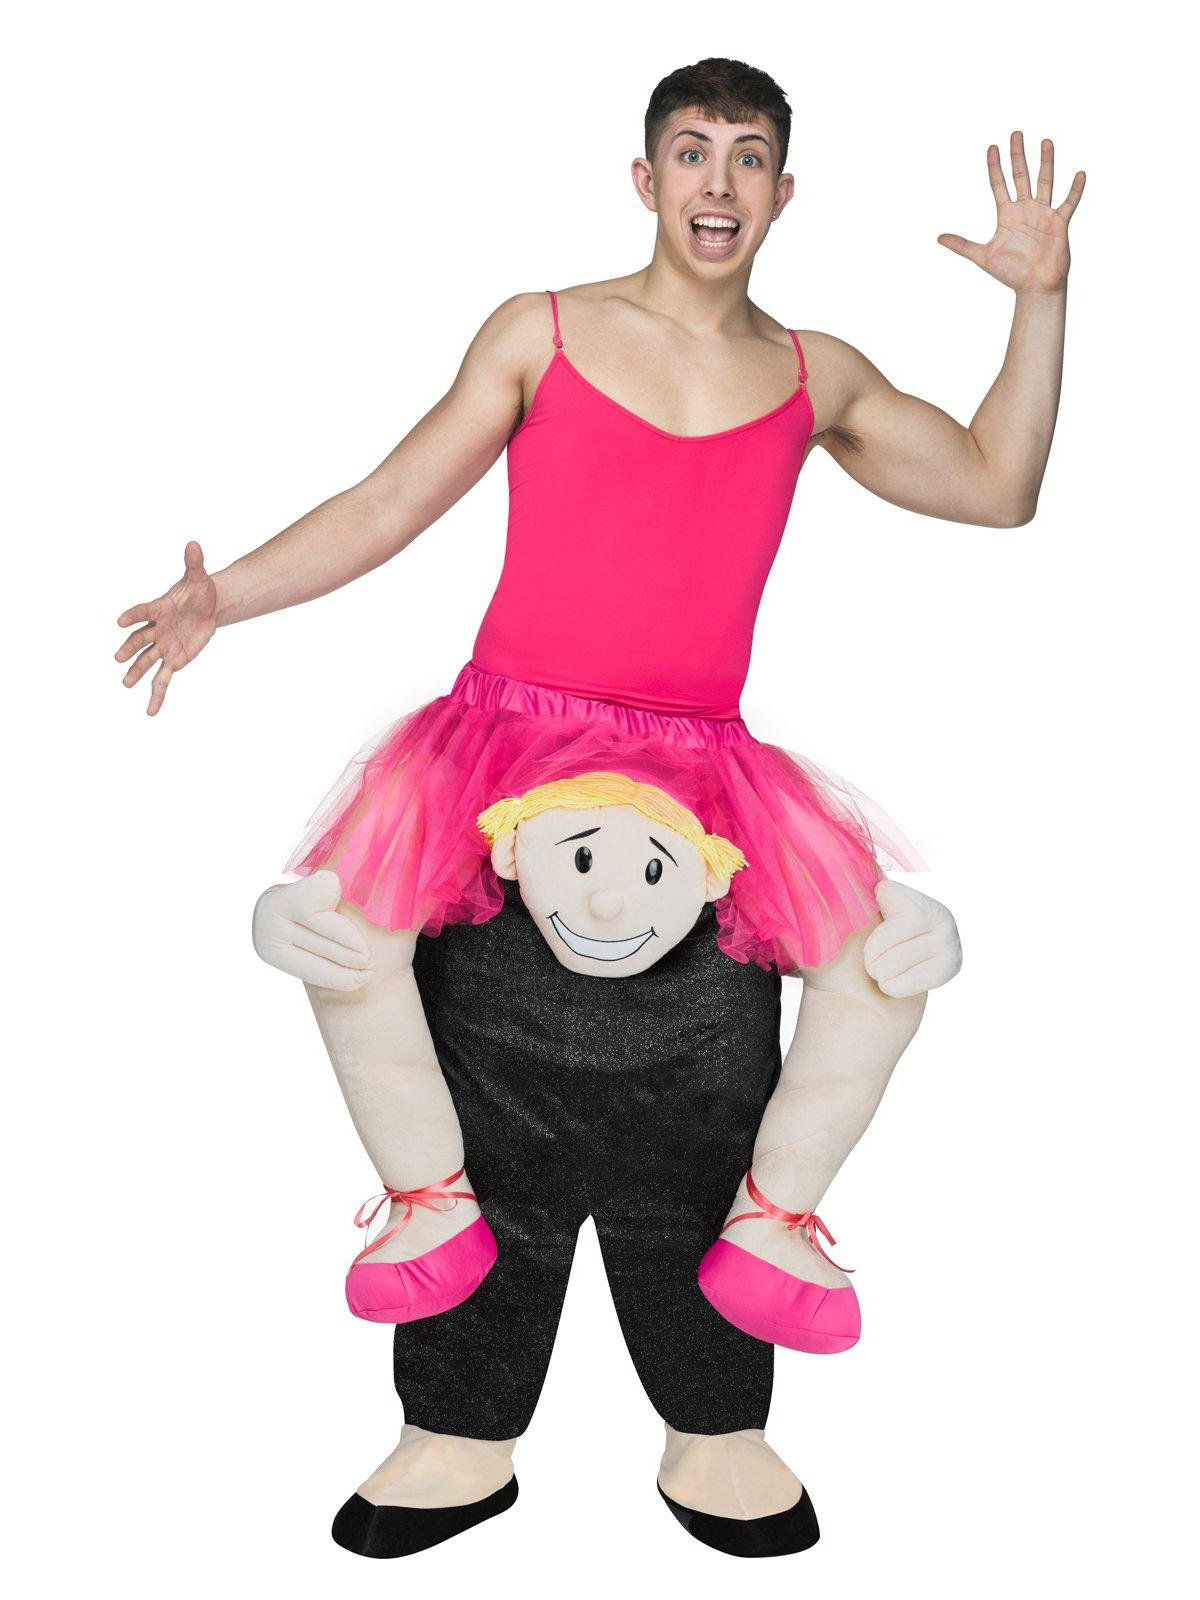 Adult Ride-A-Ballerina Costume  sc 1 st  Wholesale Halloween Costumes & Adult Ride-A-Ballerina Costume - Mens Costumes for 2018 | Wholesale ...